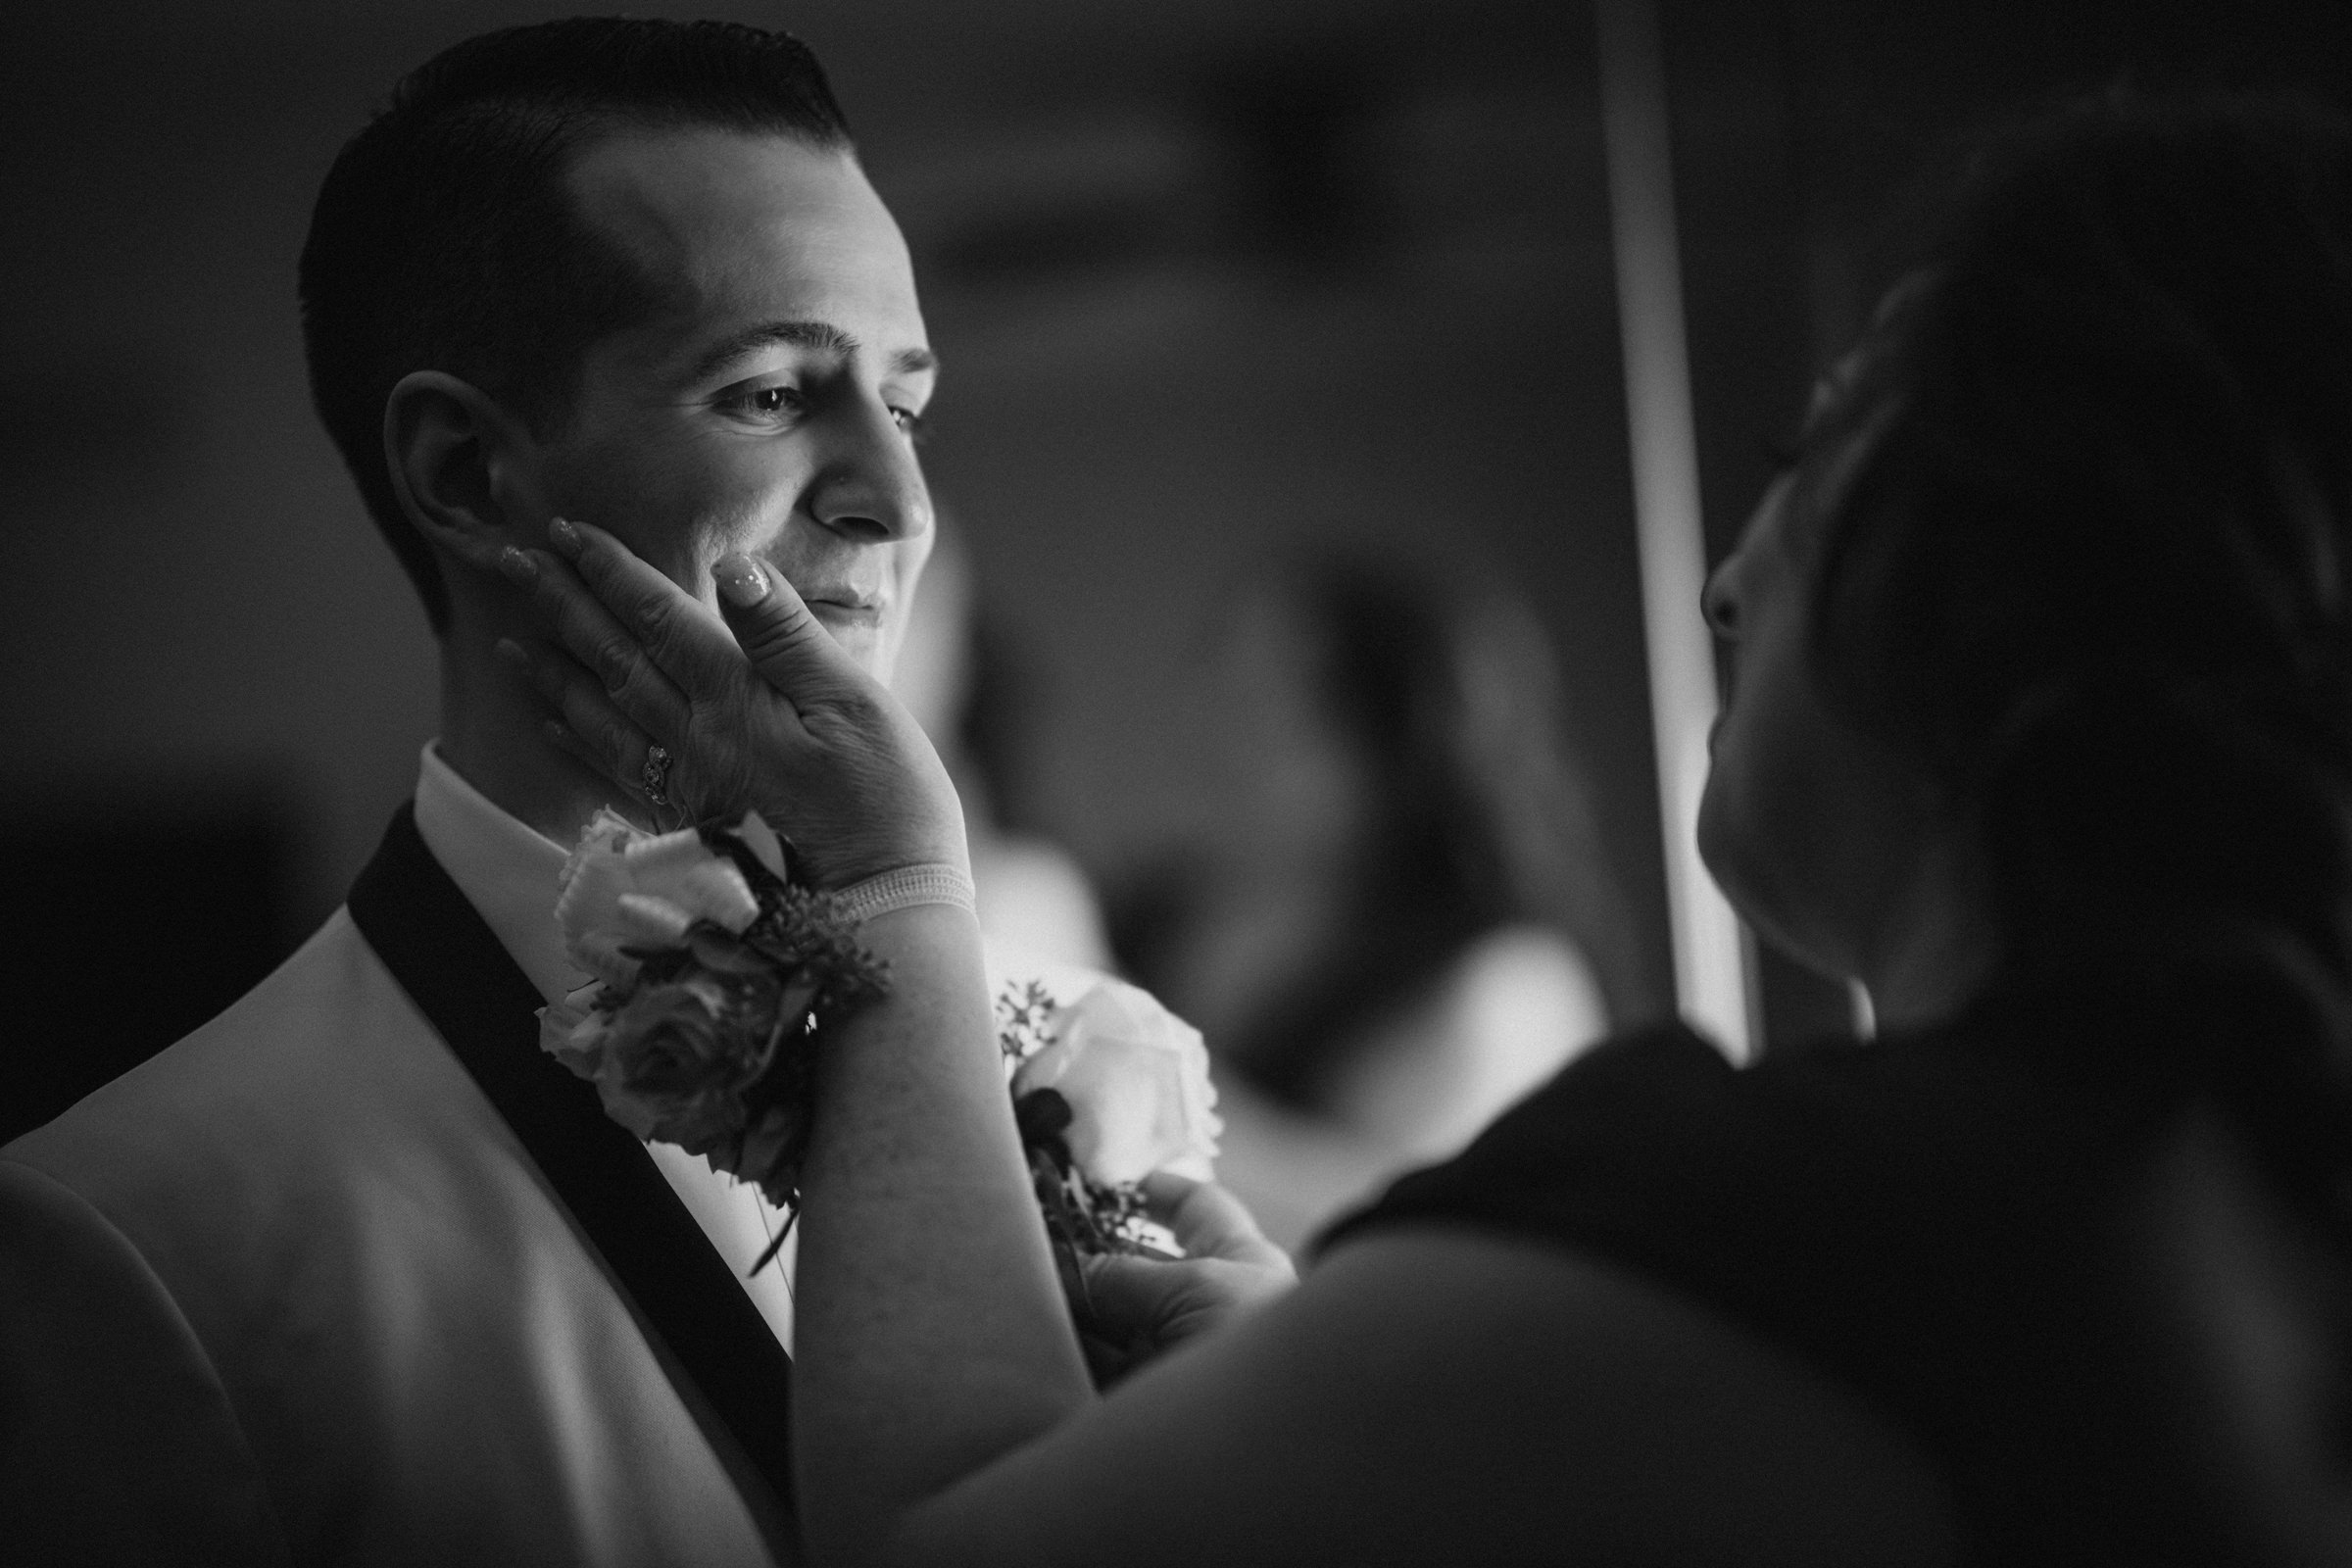 Mother of groom tenderly touches grooms face - Photo by Susan Stripling Photography